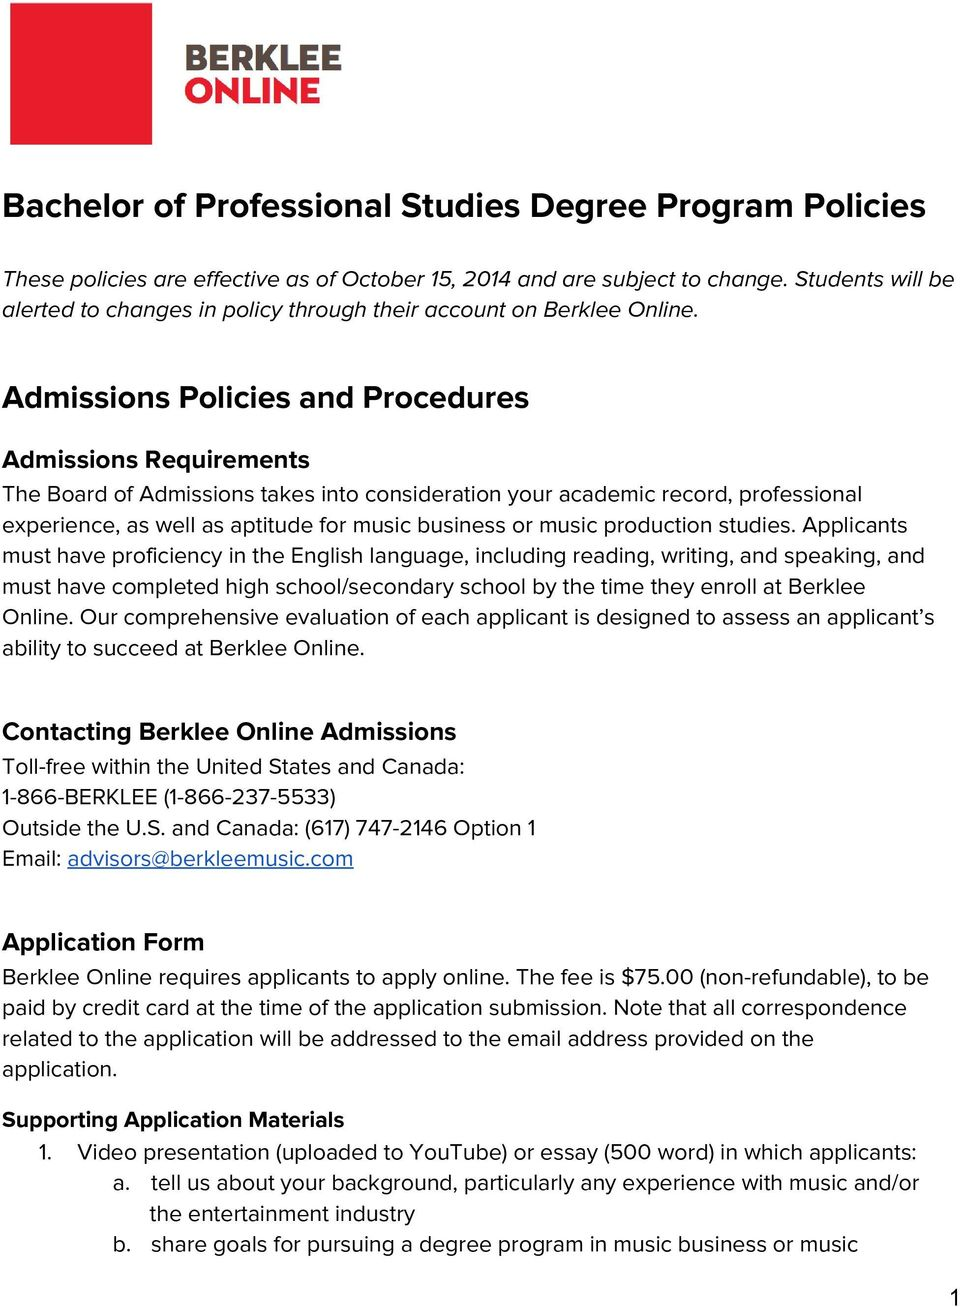 Admissions Policies and Procedures Admissions Requirements The Board of Admissions takes into consideration your academic record, professional experience, as well as aptitude for music business or